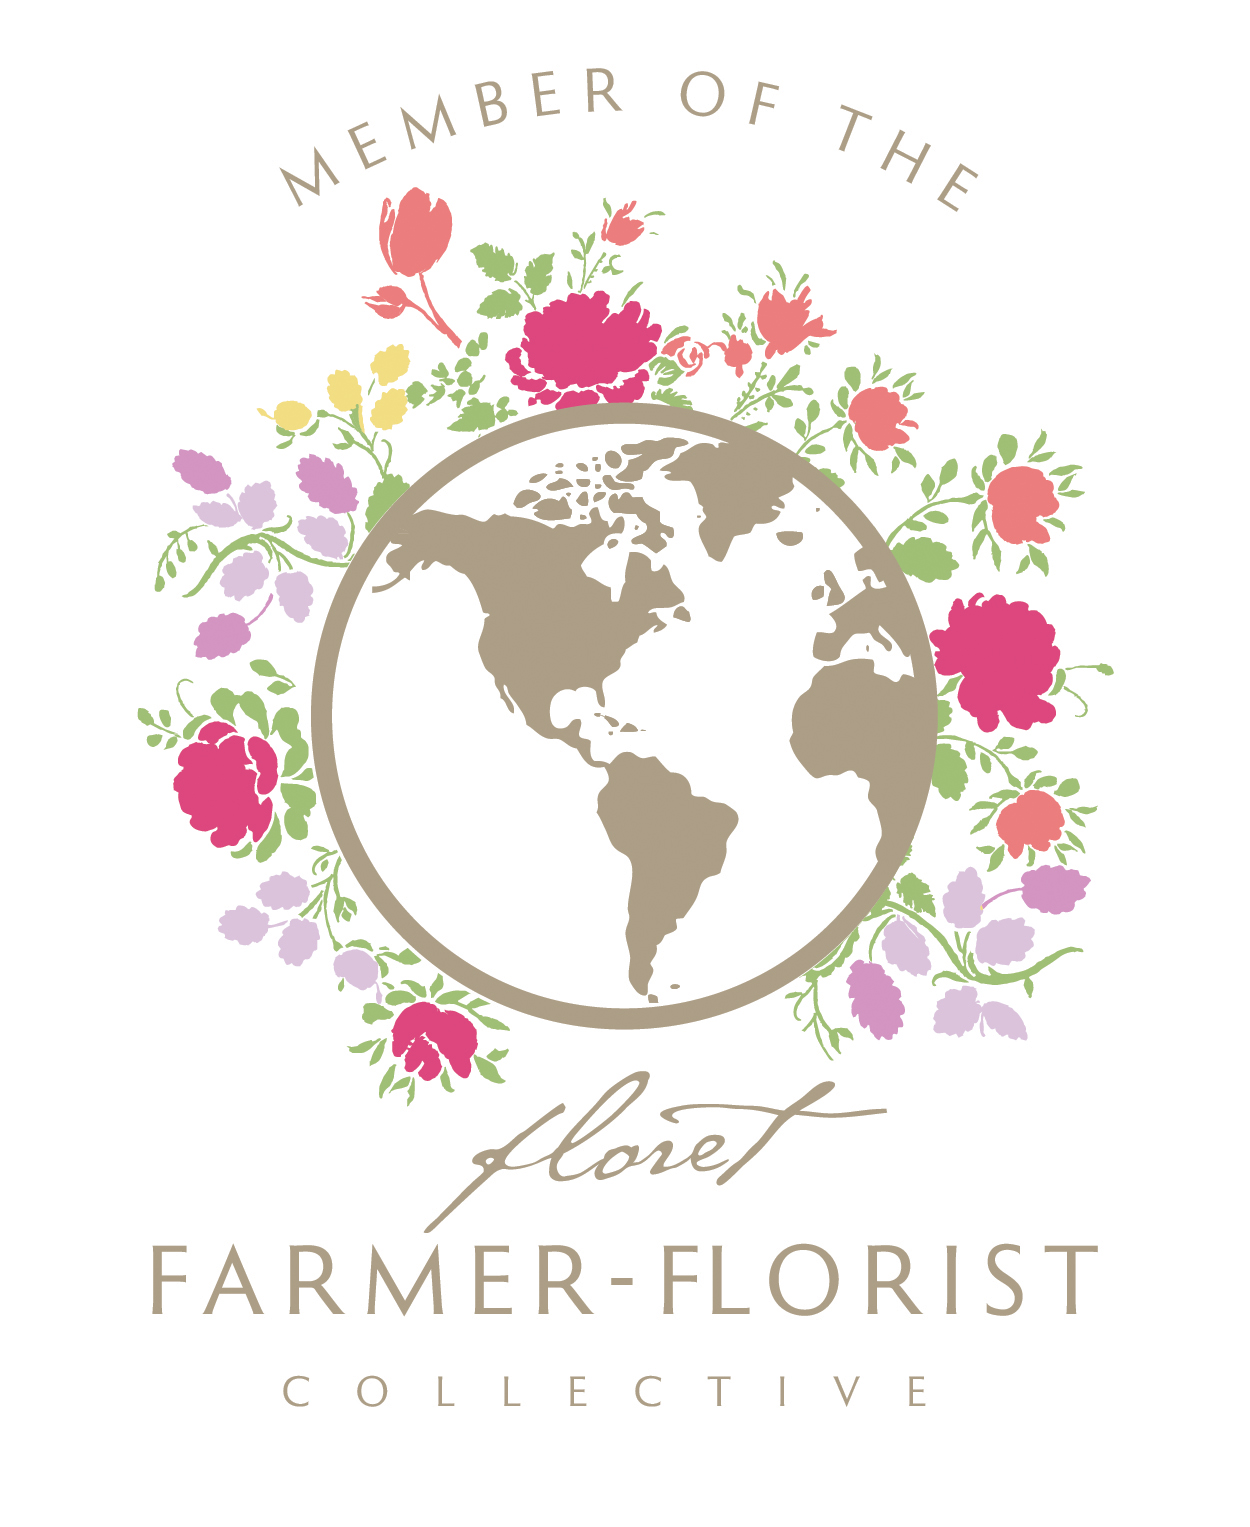 Farmer Florist Collective.jpg